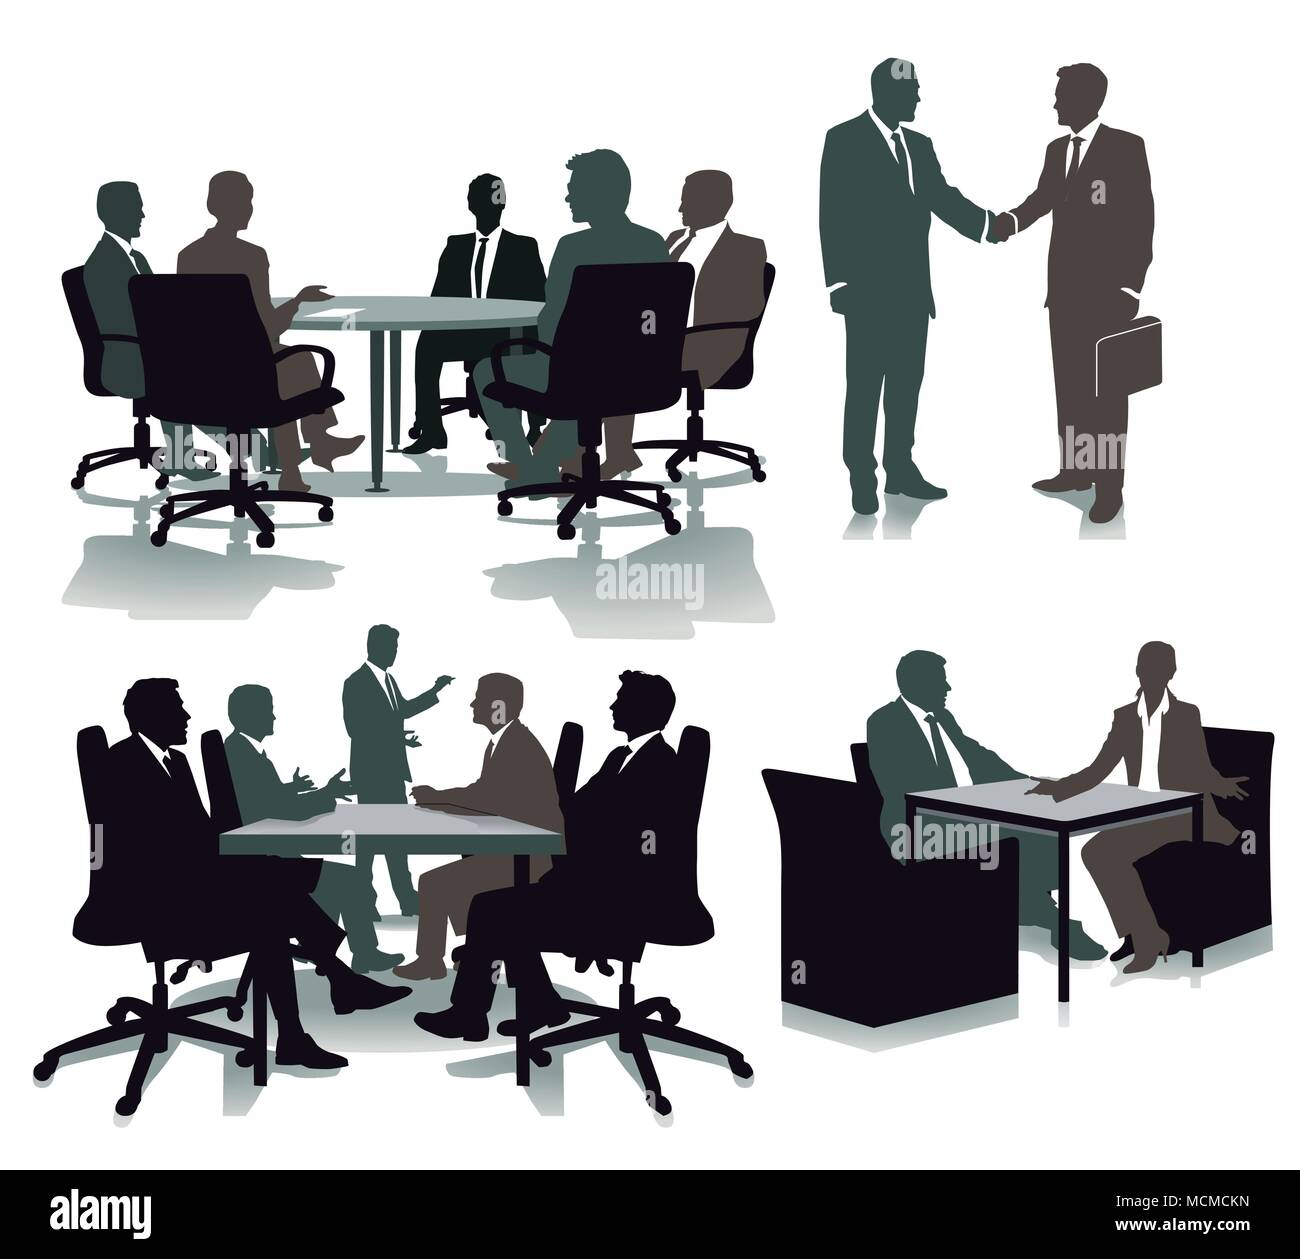 Consulting in the office, illustration - Stock Vector